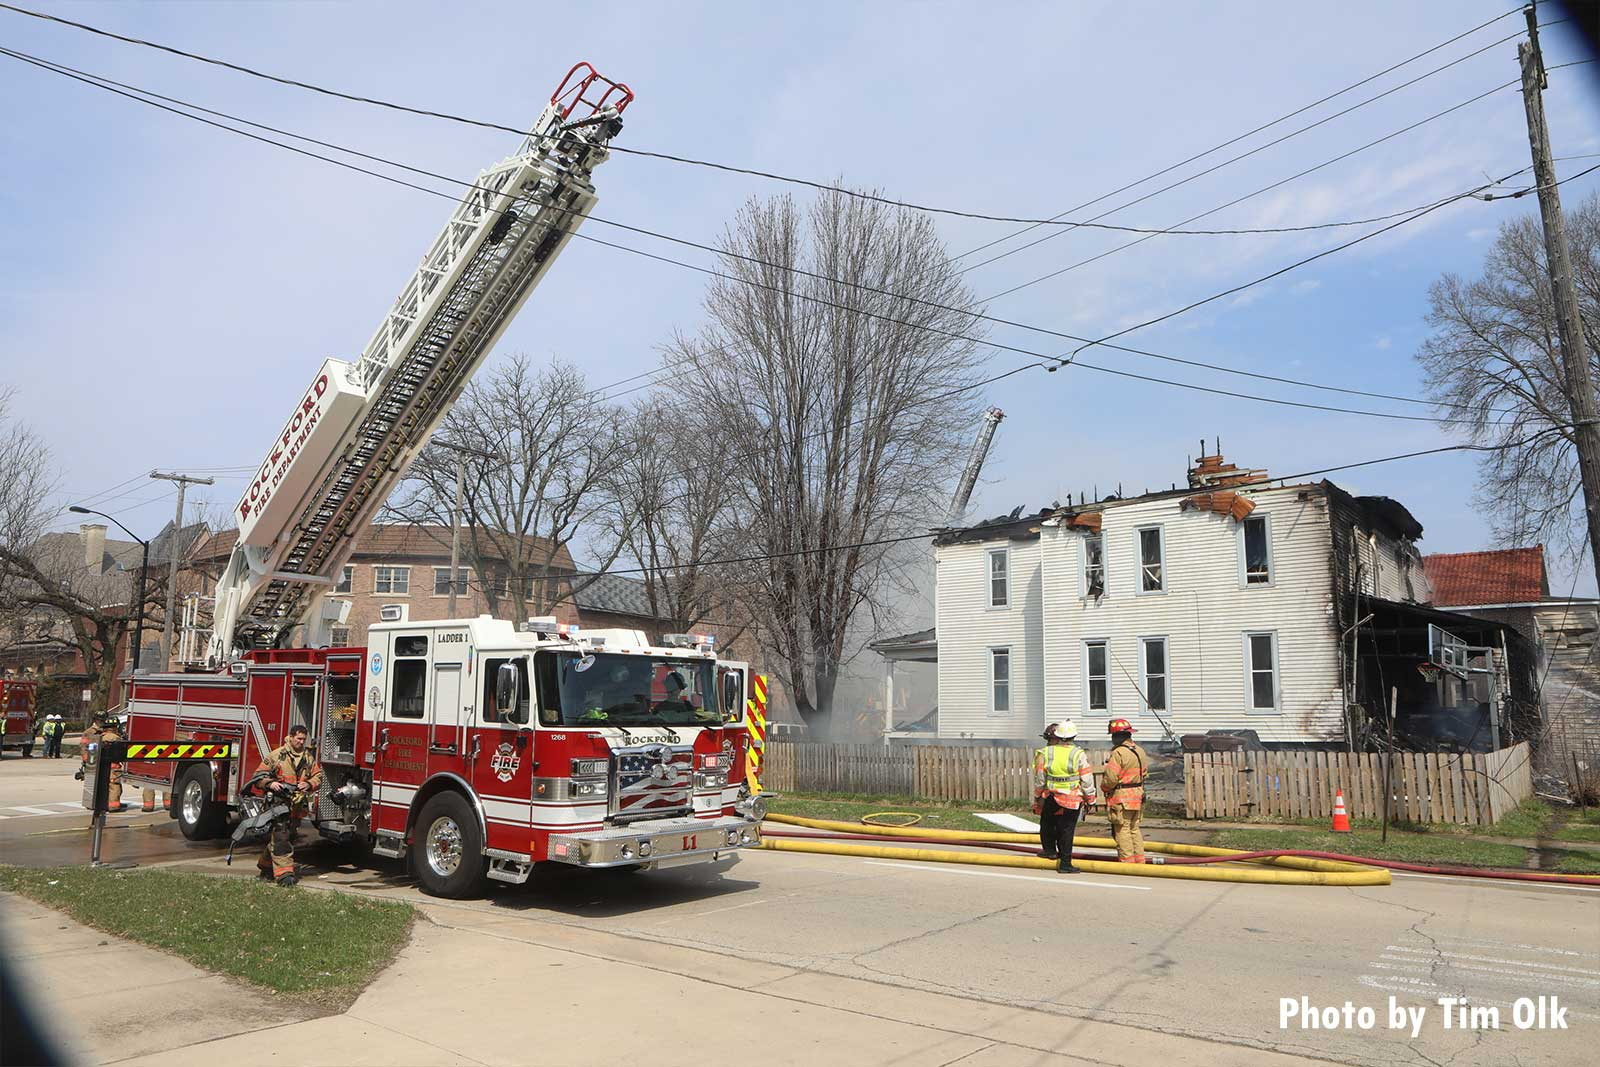 Fire truck with aerial ladder on the fireground